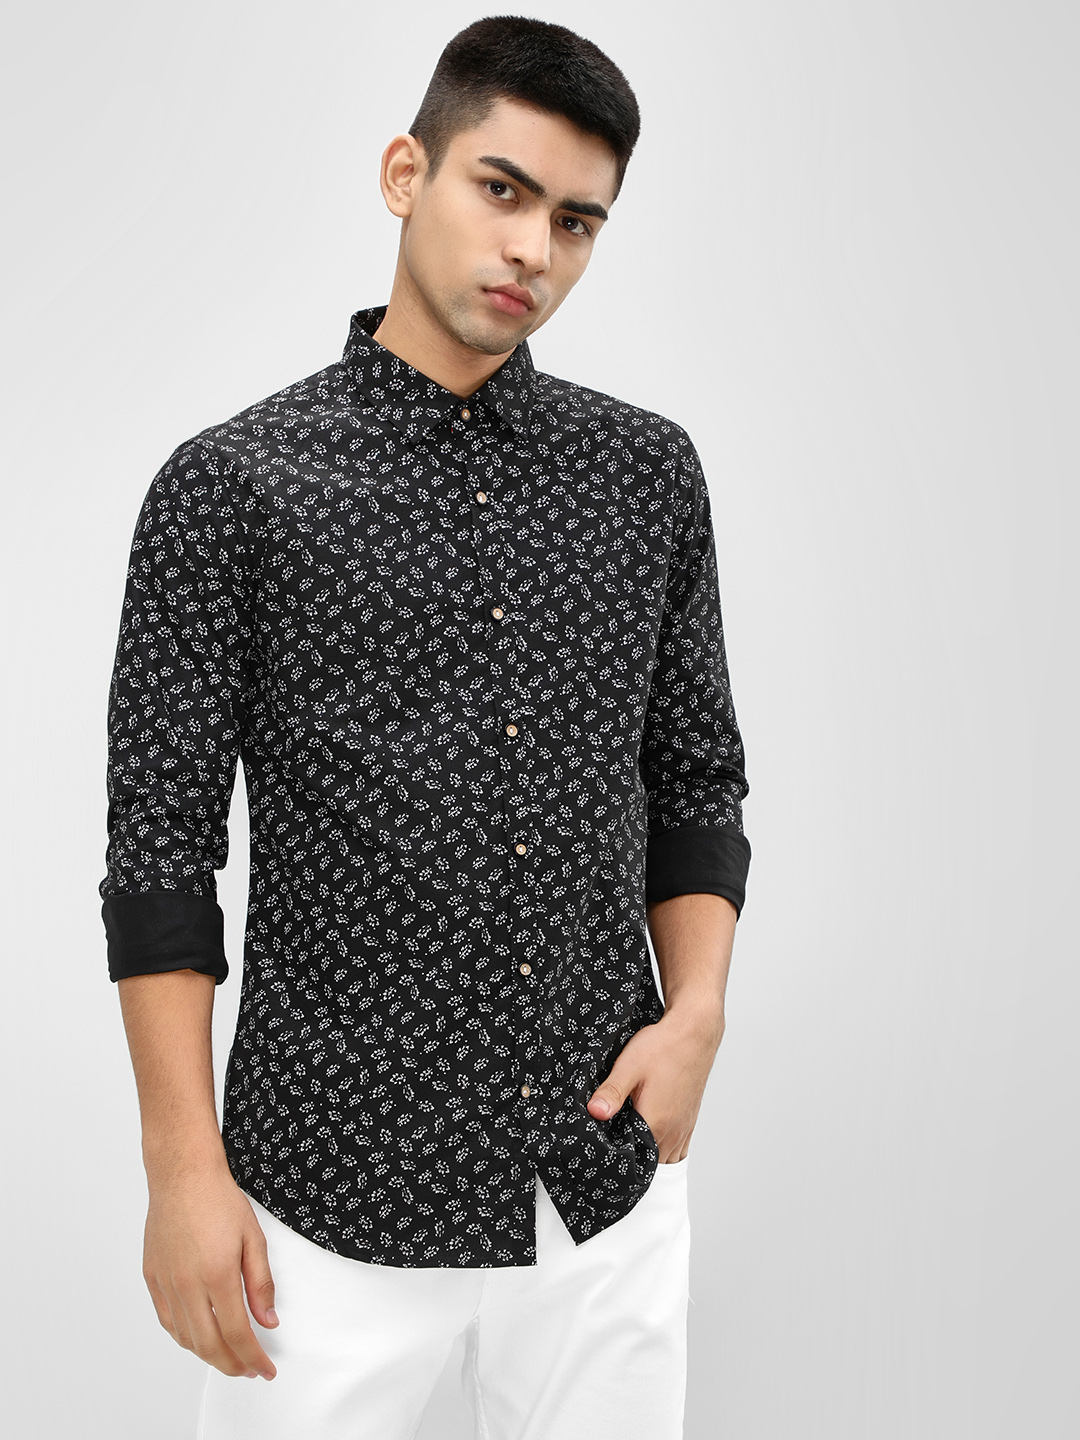 Mr Button Black Leaf Print Casual Shirt 1